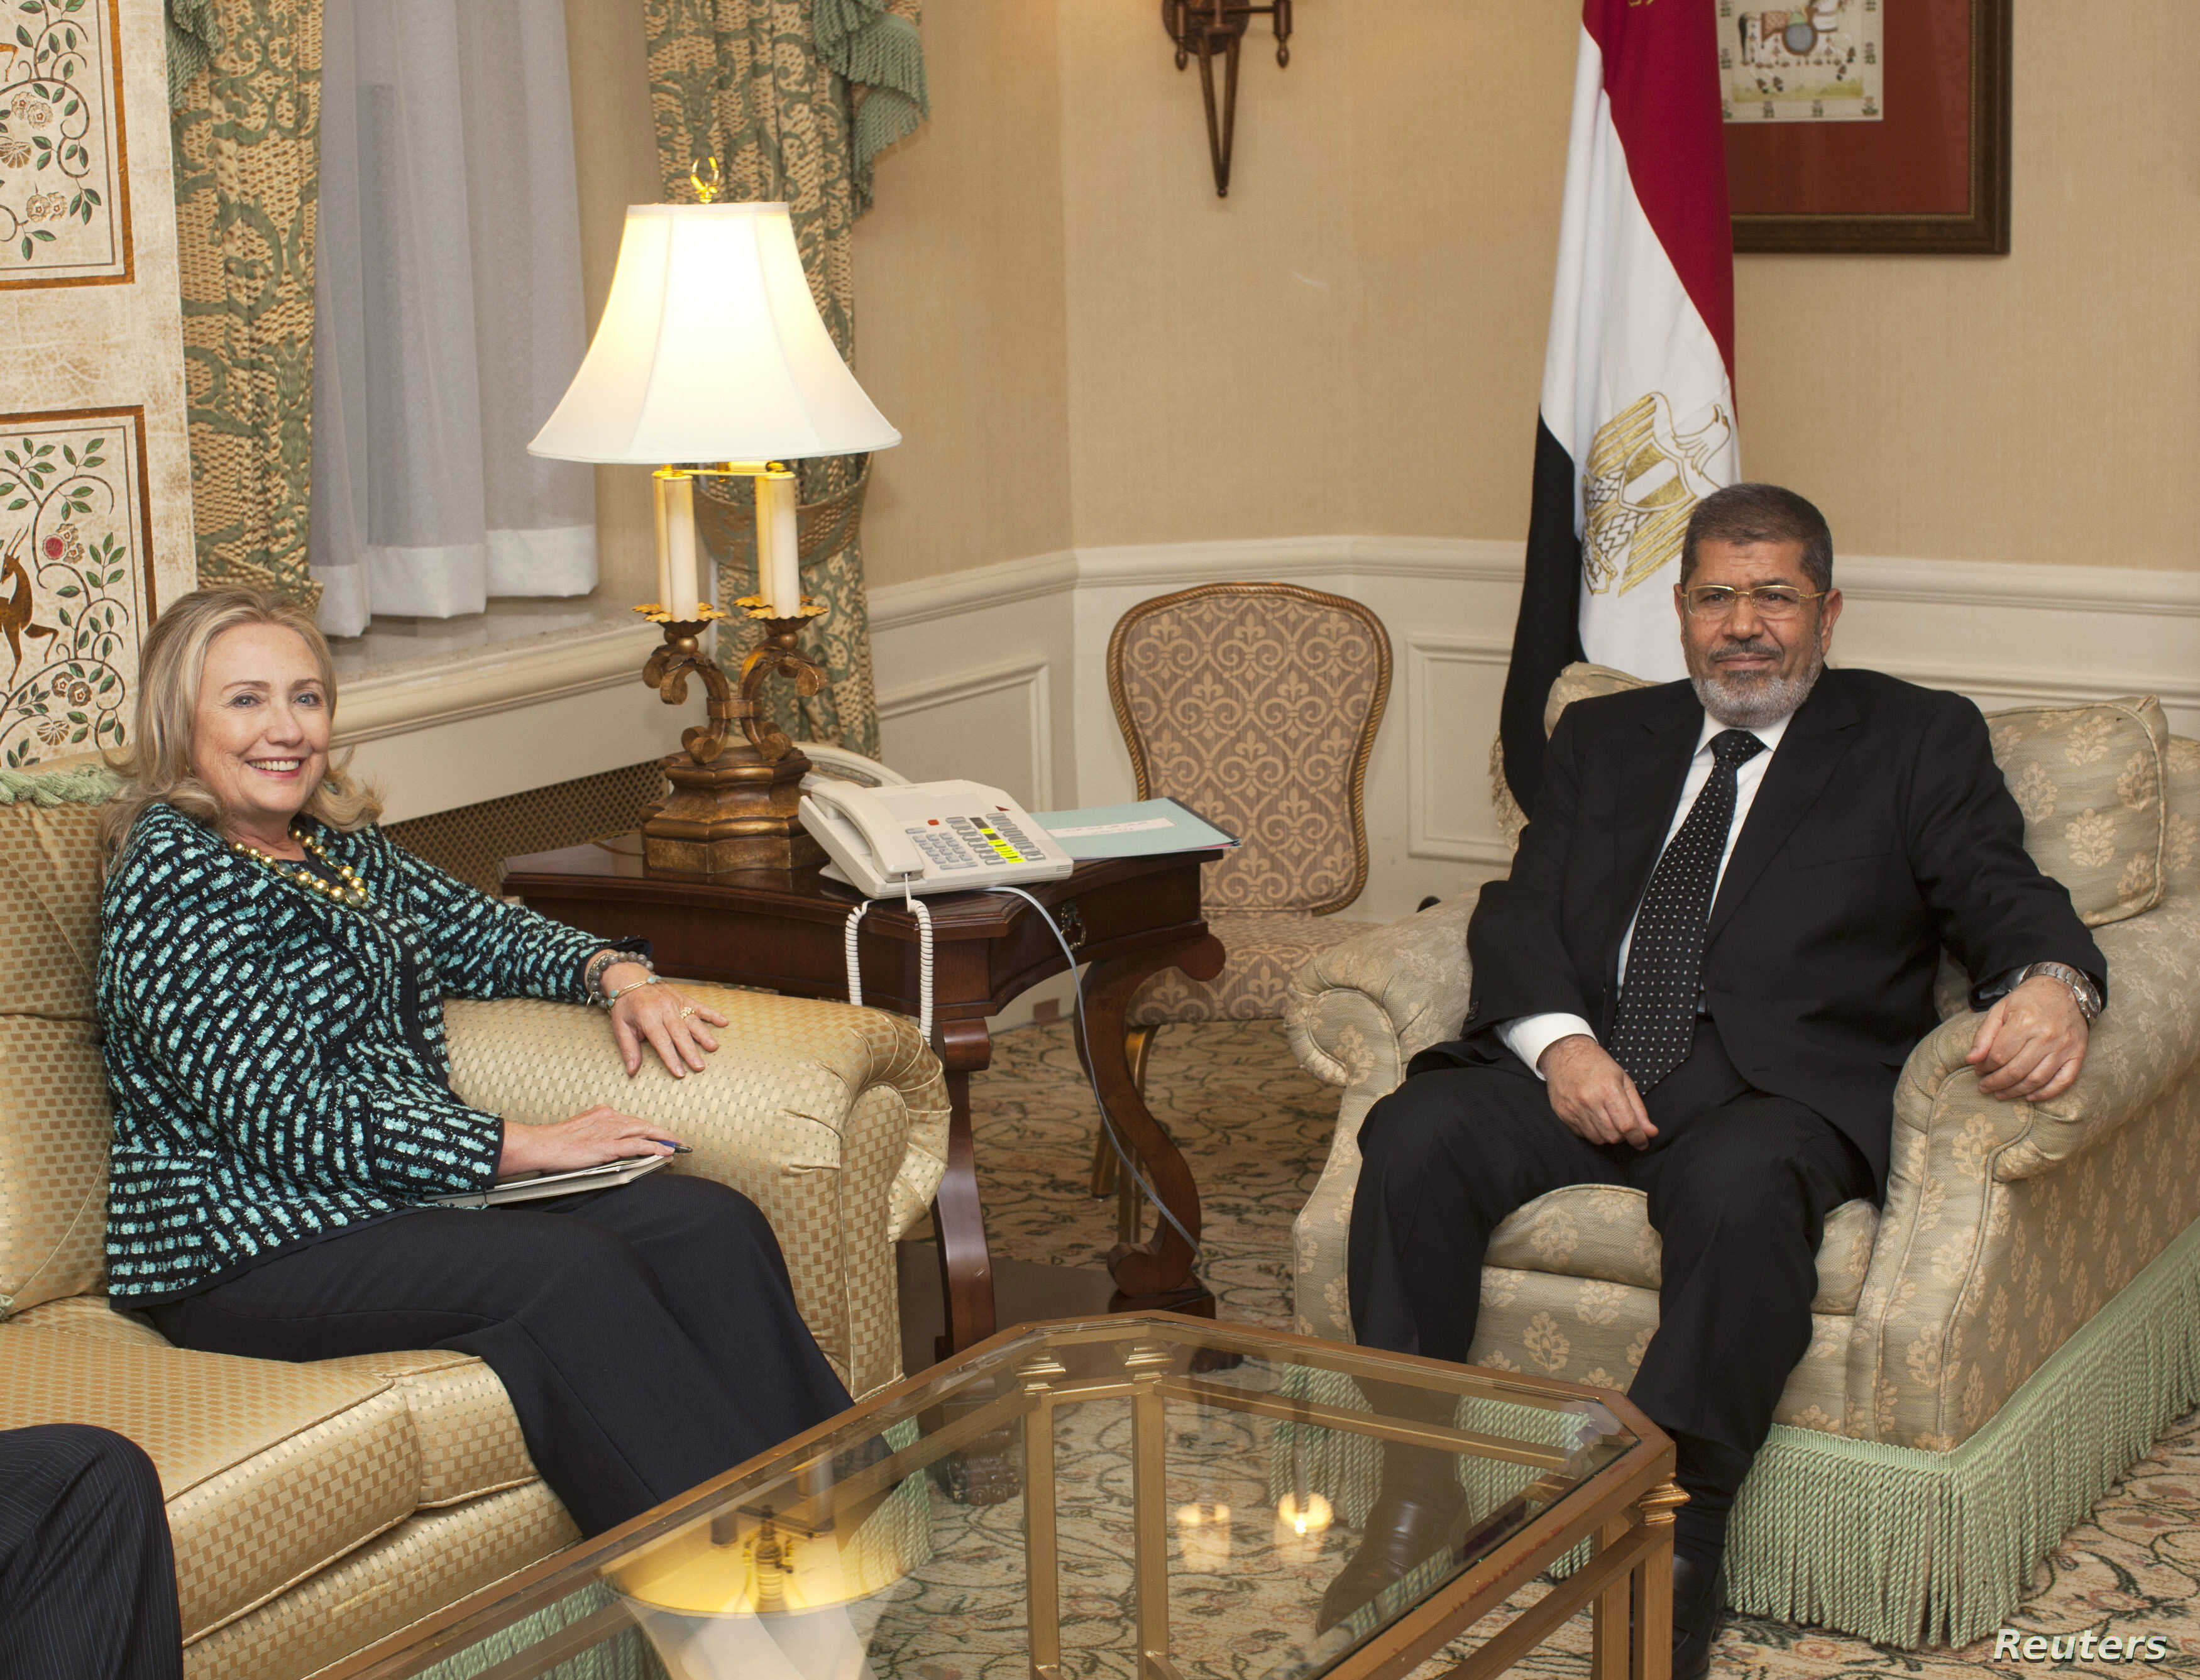 U.S. Secretary of State Hillary Clinton meets with Egyptian President Mohamed Morsi on the sidelines of the United Nations General Assembly in New York, Sept. 24, 2012.